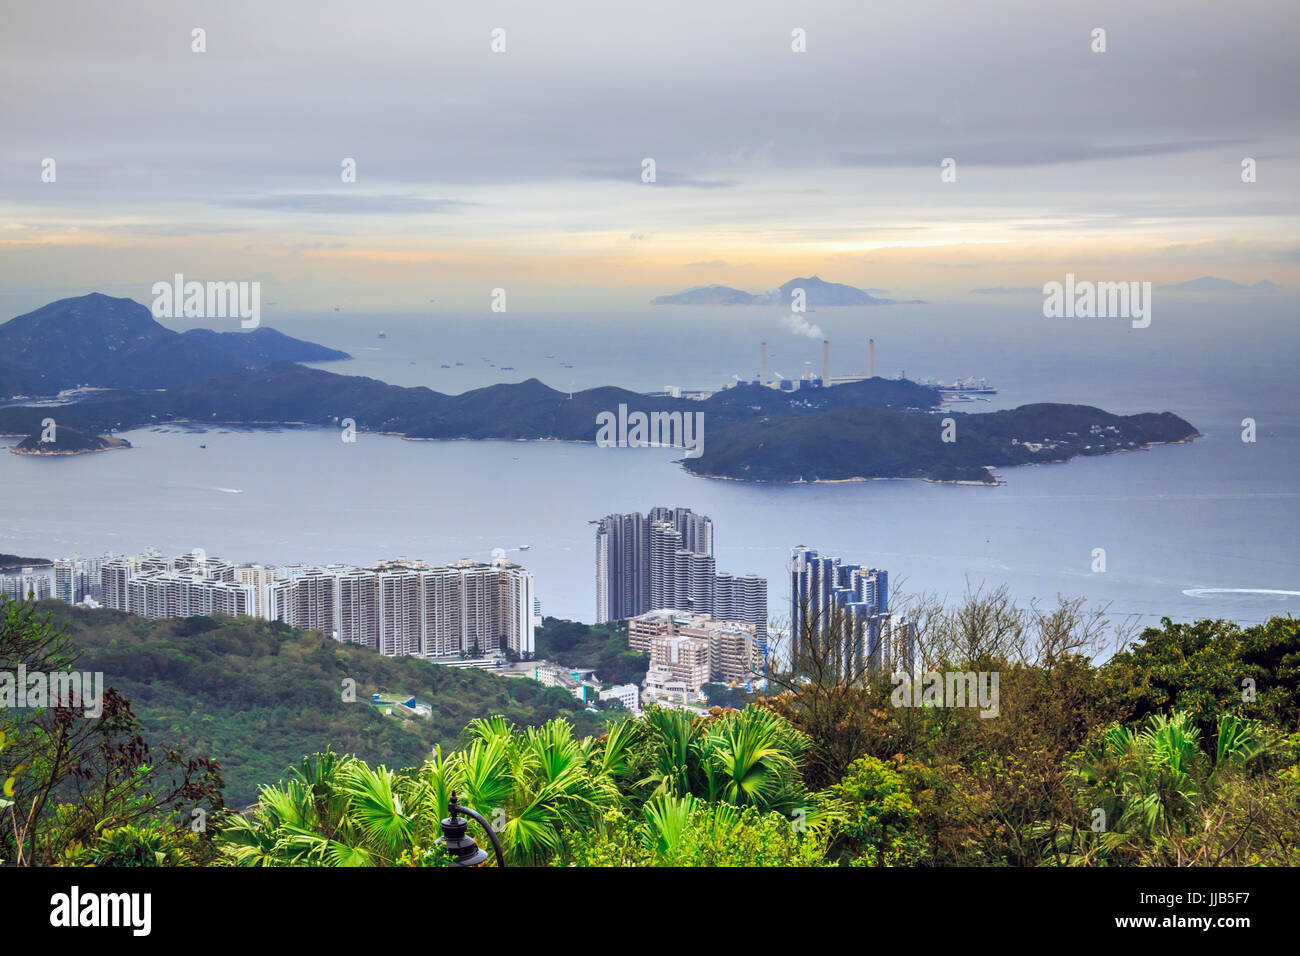 View of Residence Bel-Air, Lamma Power Station and South China Sea Horizontal line from the peak, hong kong, China - Stock Image